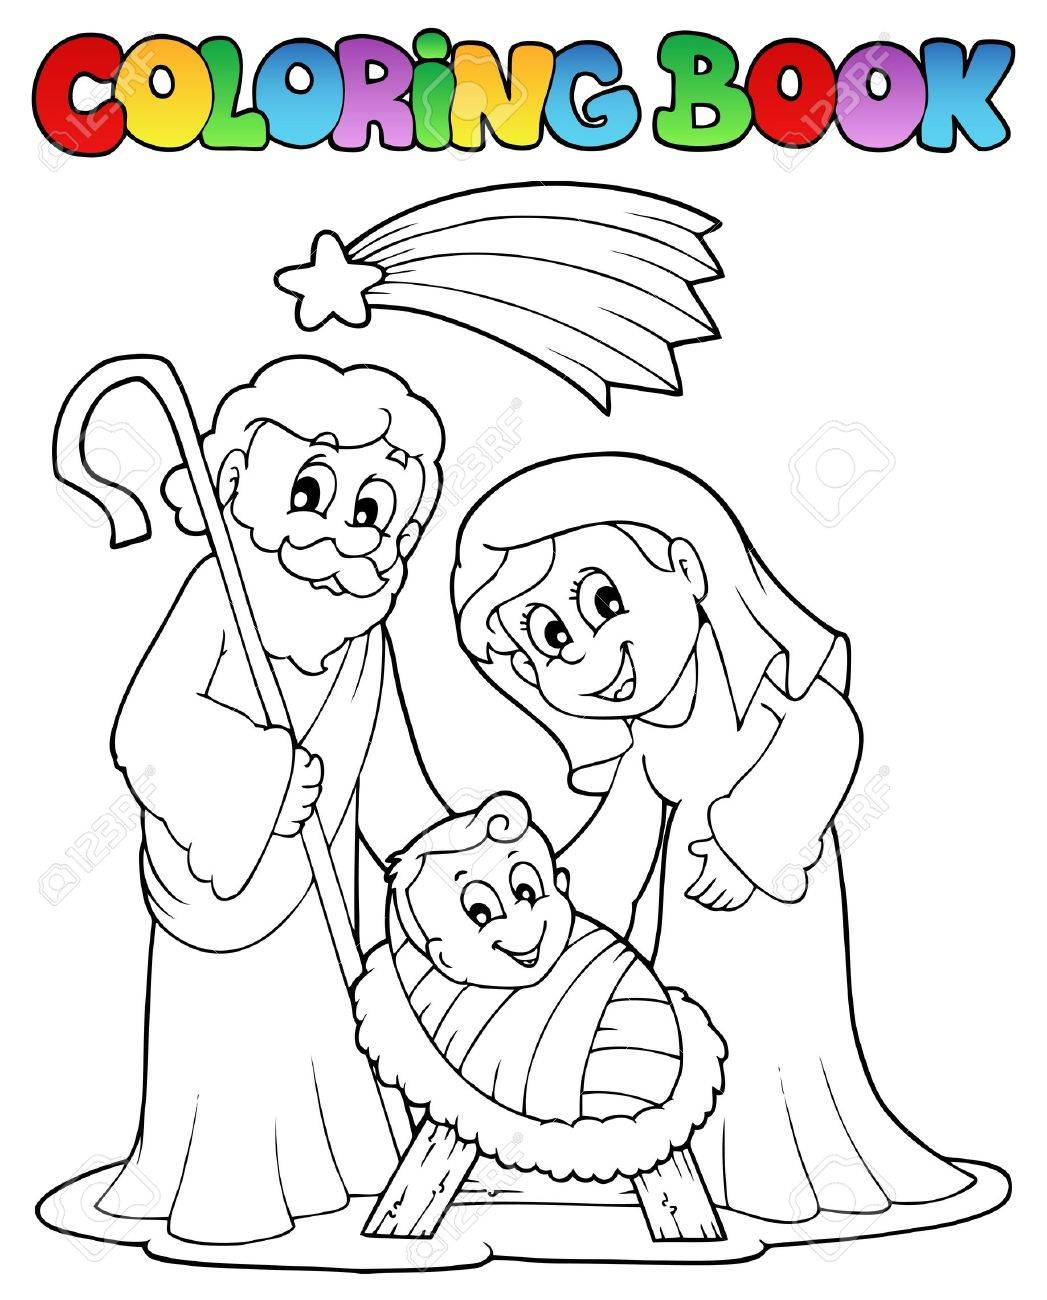 Coloring Book Nativity Scene 1 Royalty Free Cliparts, Vectors, And ...